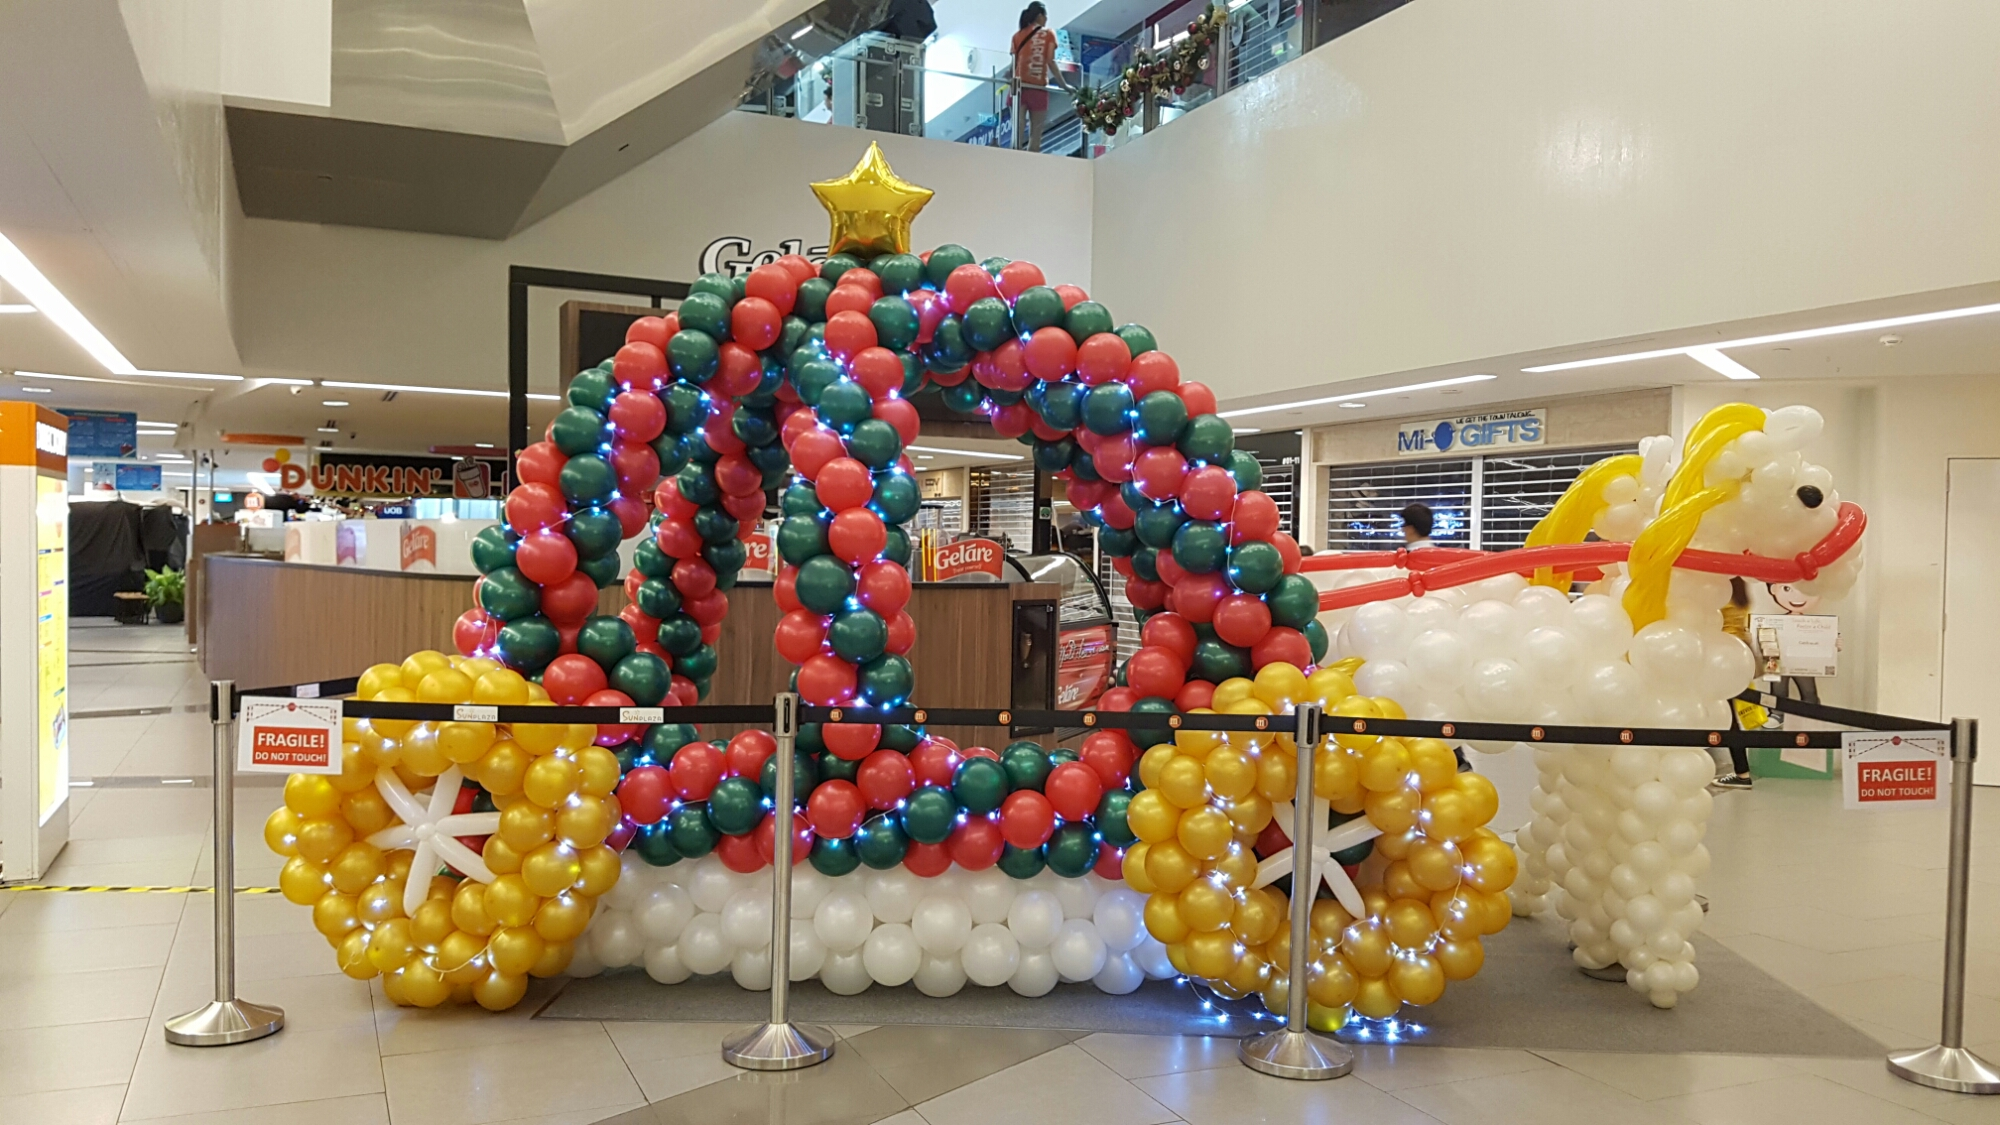 , Another Christmas mall project for sunplaza shopping center!, Singapore Balloon Decoration Services - Balloon Workshop and Balloon Sculpting